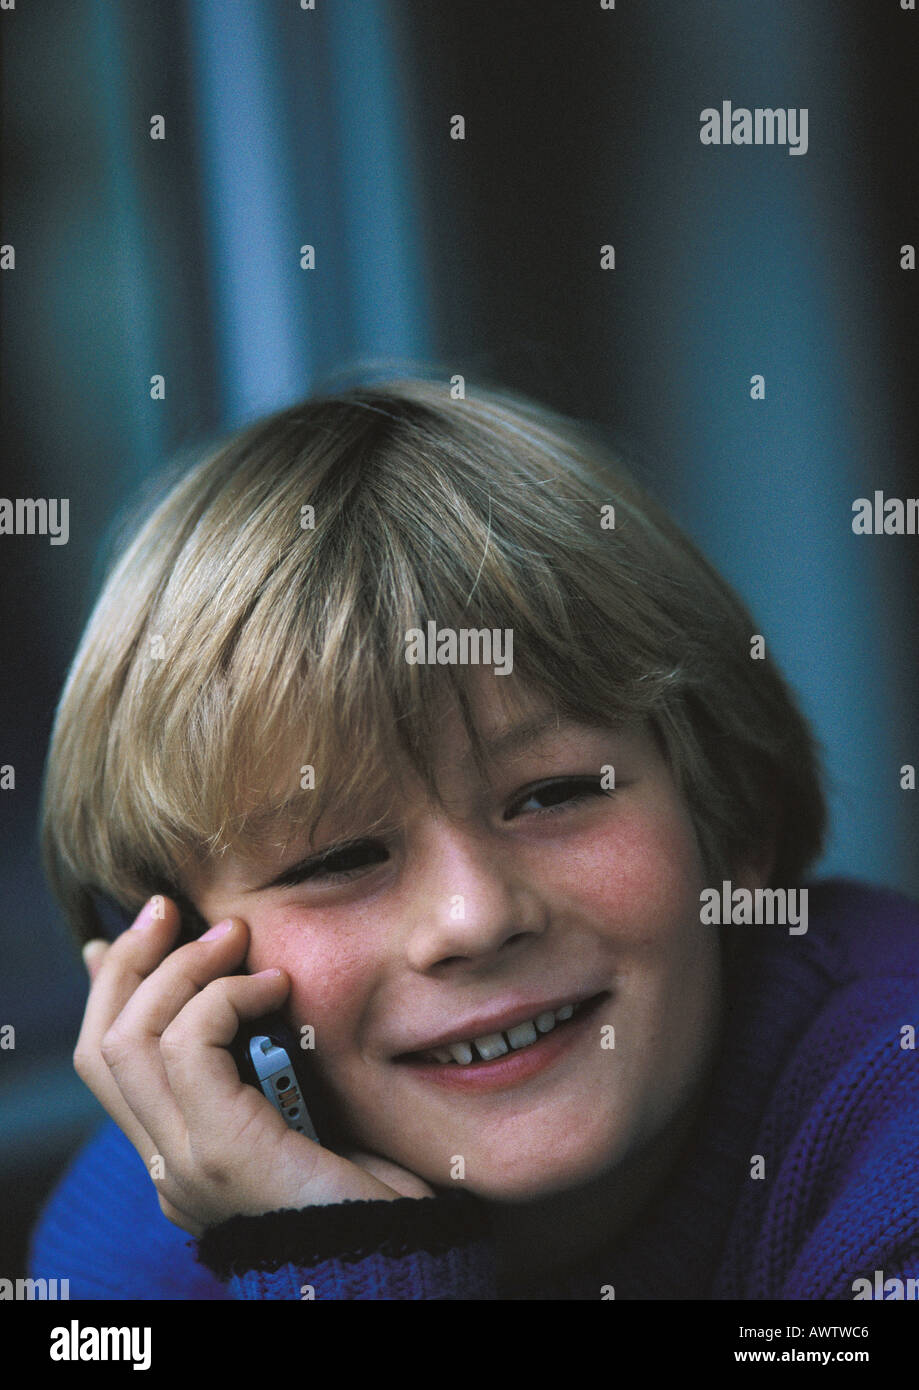 Young boy on phone, smiling, close up - Stock Image